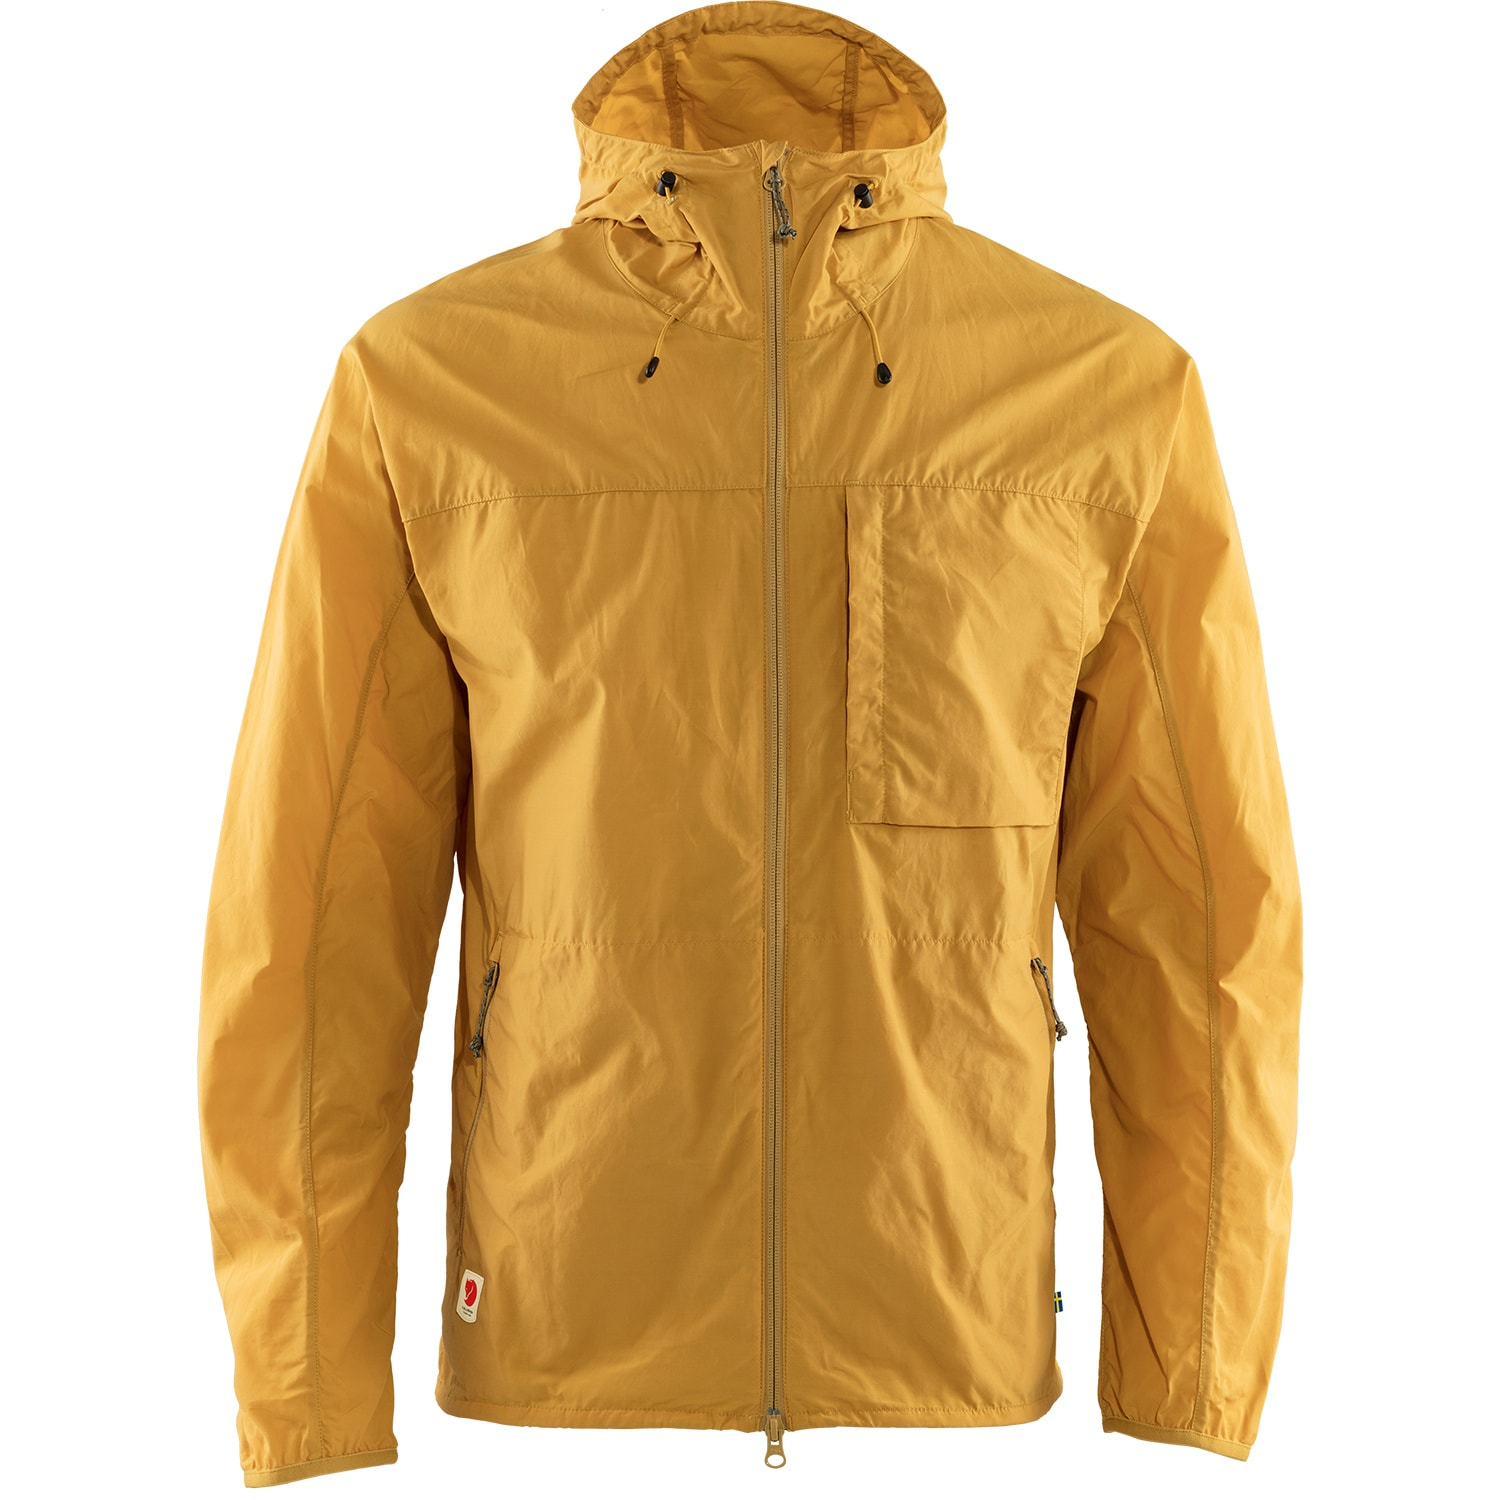 Fjällräven High Coast Wind Jacket, M's